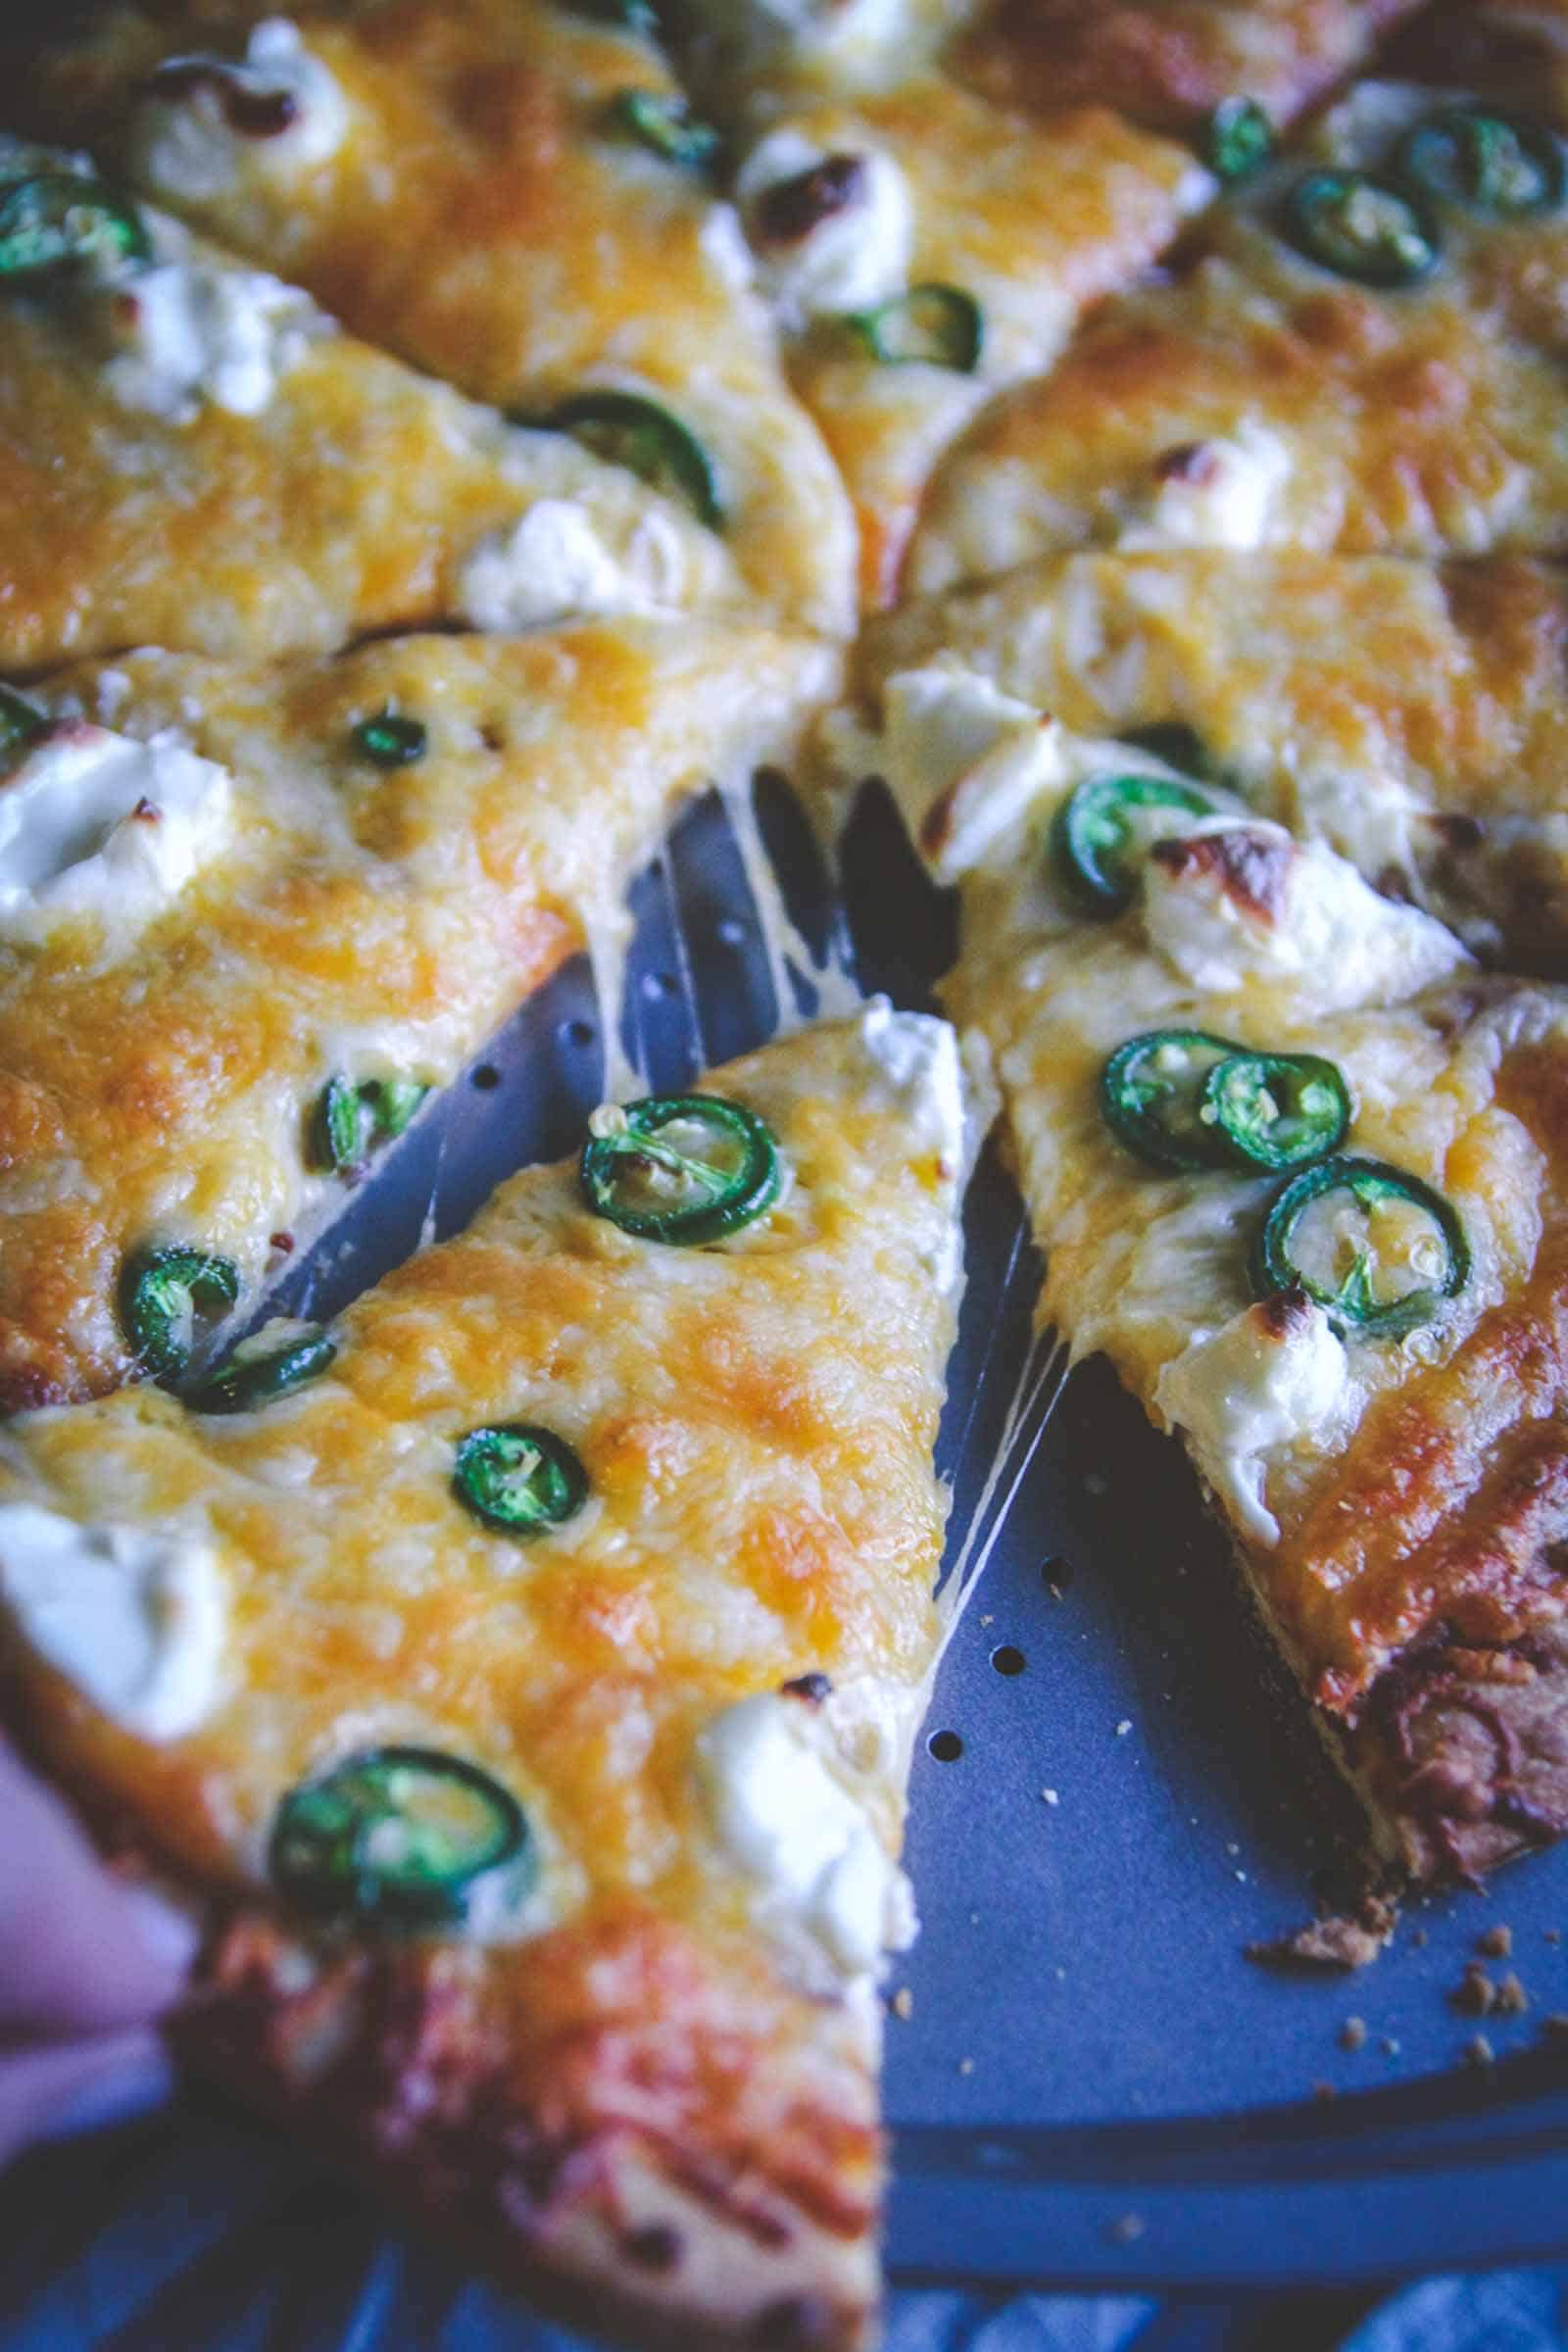 Jalapeno enchilada pizza. 5 ingredient pizza recipe from @sweetphi